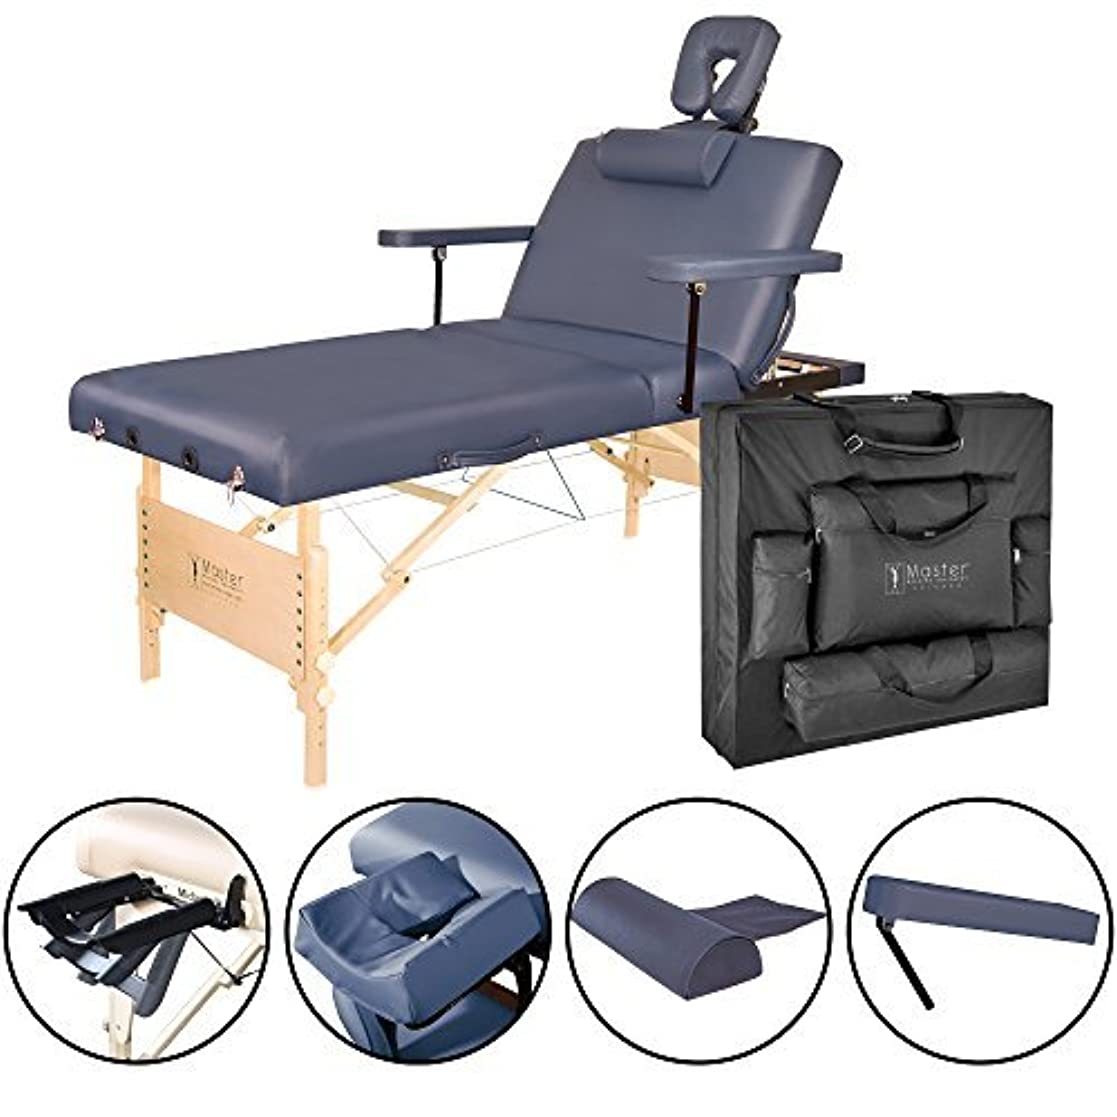 引っ張る化石メンタルMaster Massage Coronado Salon LX Portable Massage Table Package Royal Blue 31 Inch [並行輸入品]